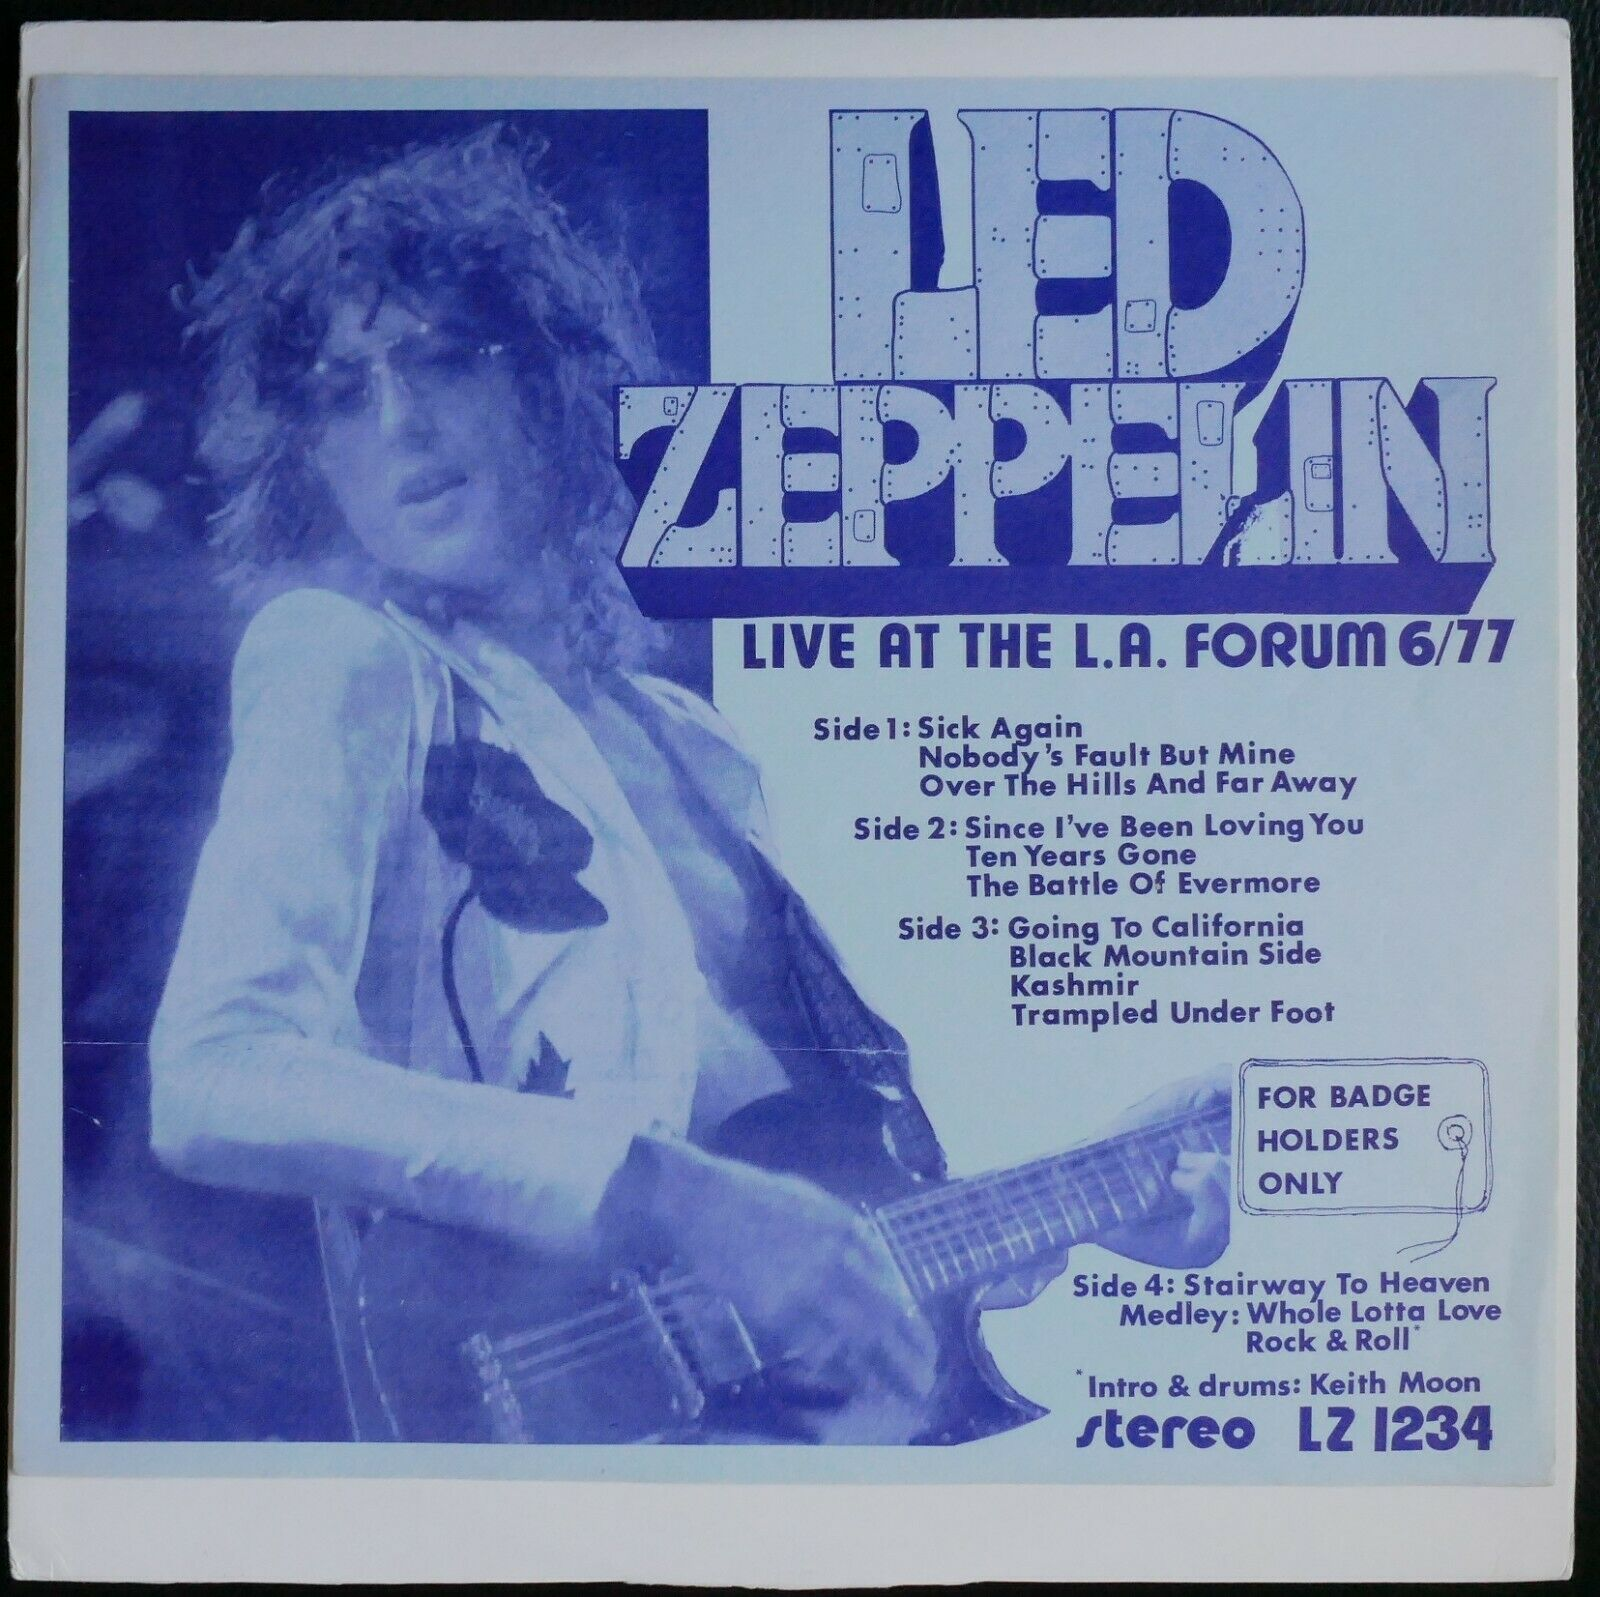 LED ZEPPELIN - FOR BADGE HOLDERS ONLY RARE 2LP LIVE 1977 no TMOQ the Who